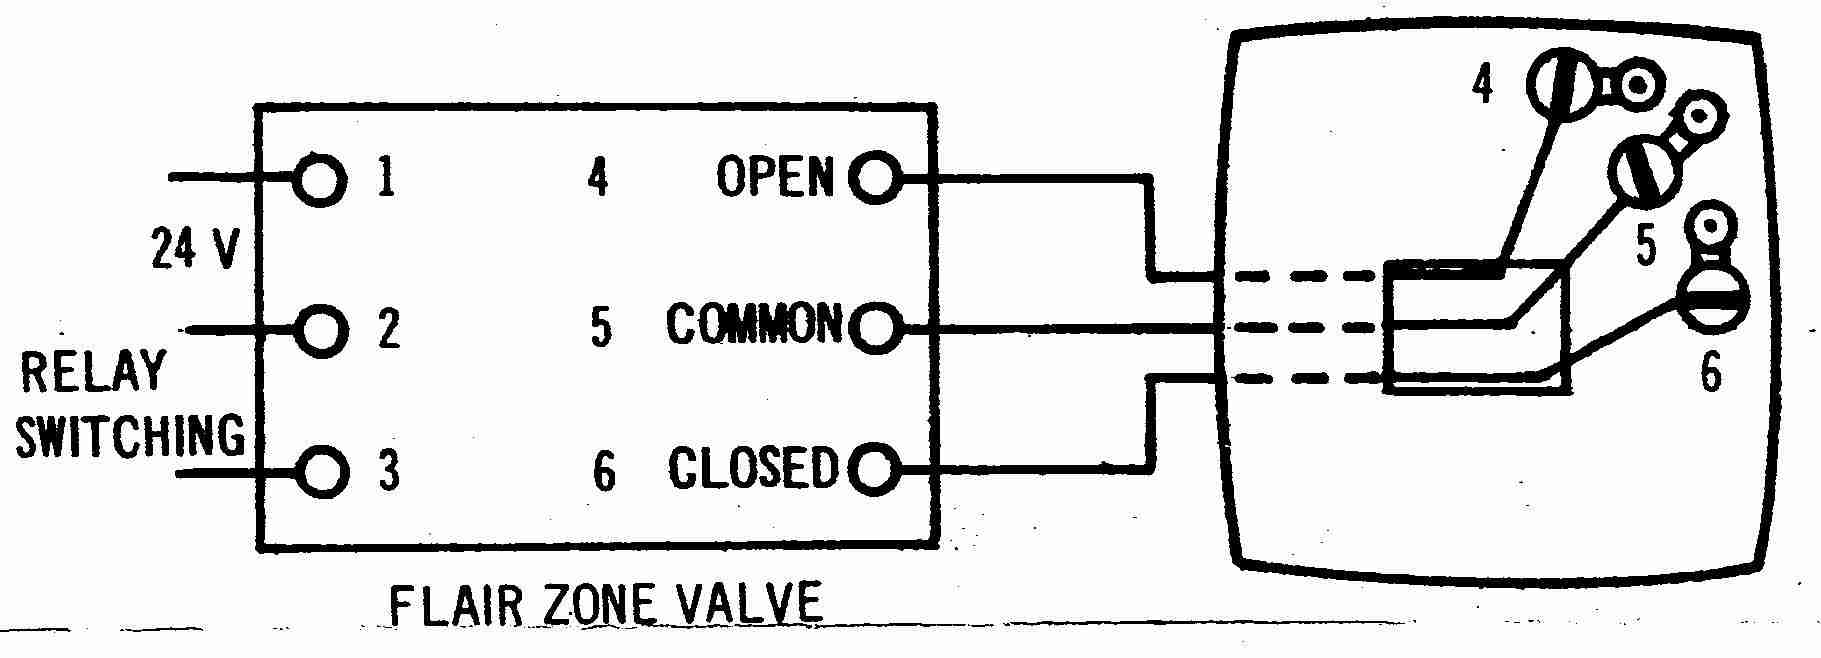 Flair3w_001_DJFc2 zone valve wiring installation & instructions guide to heating white rodgers 3 wire zone valve wiring diagram at webbmarketing.co